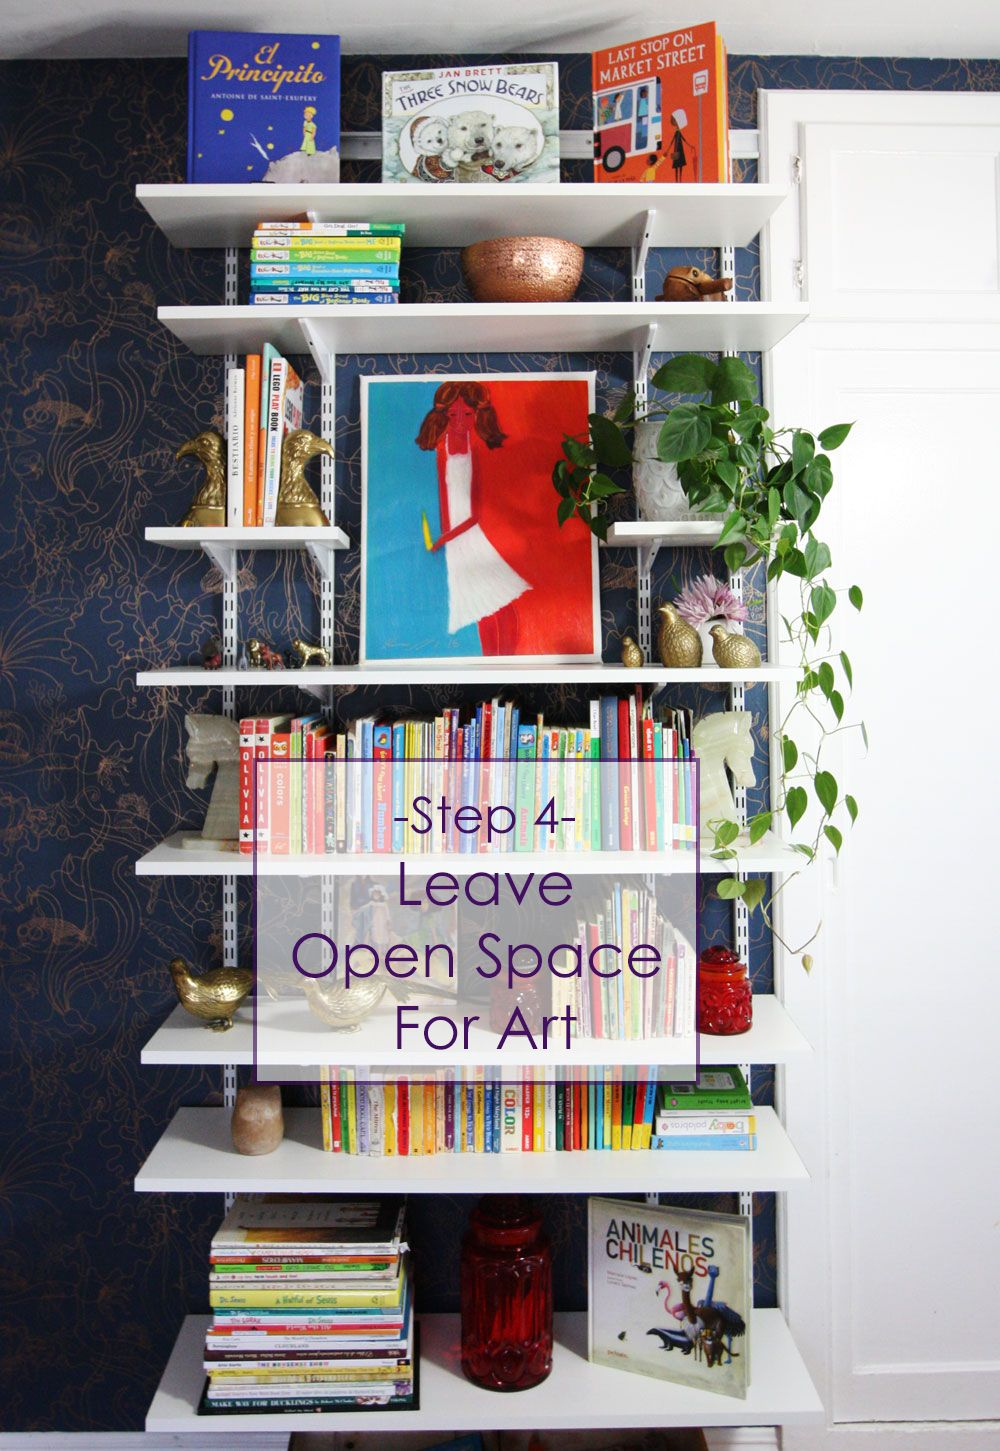 7 Steps To Eye-catching Bookshelves | Blogger Home Projects We Love